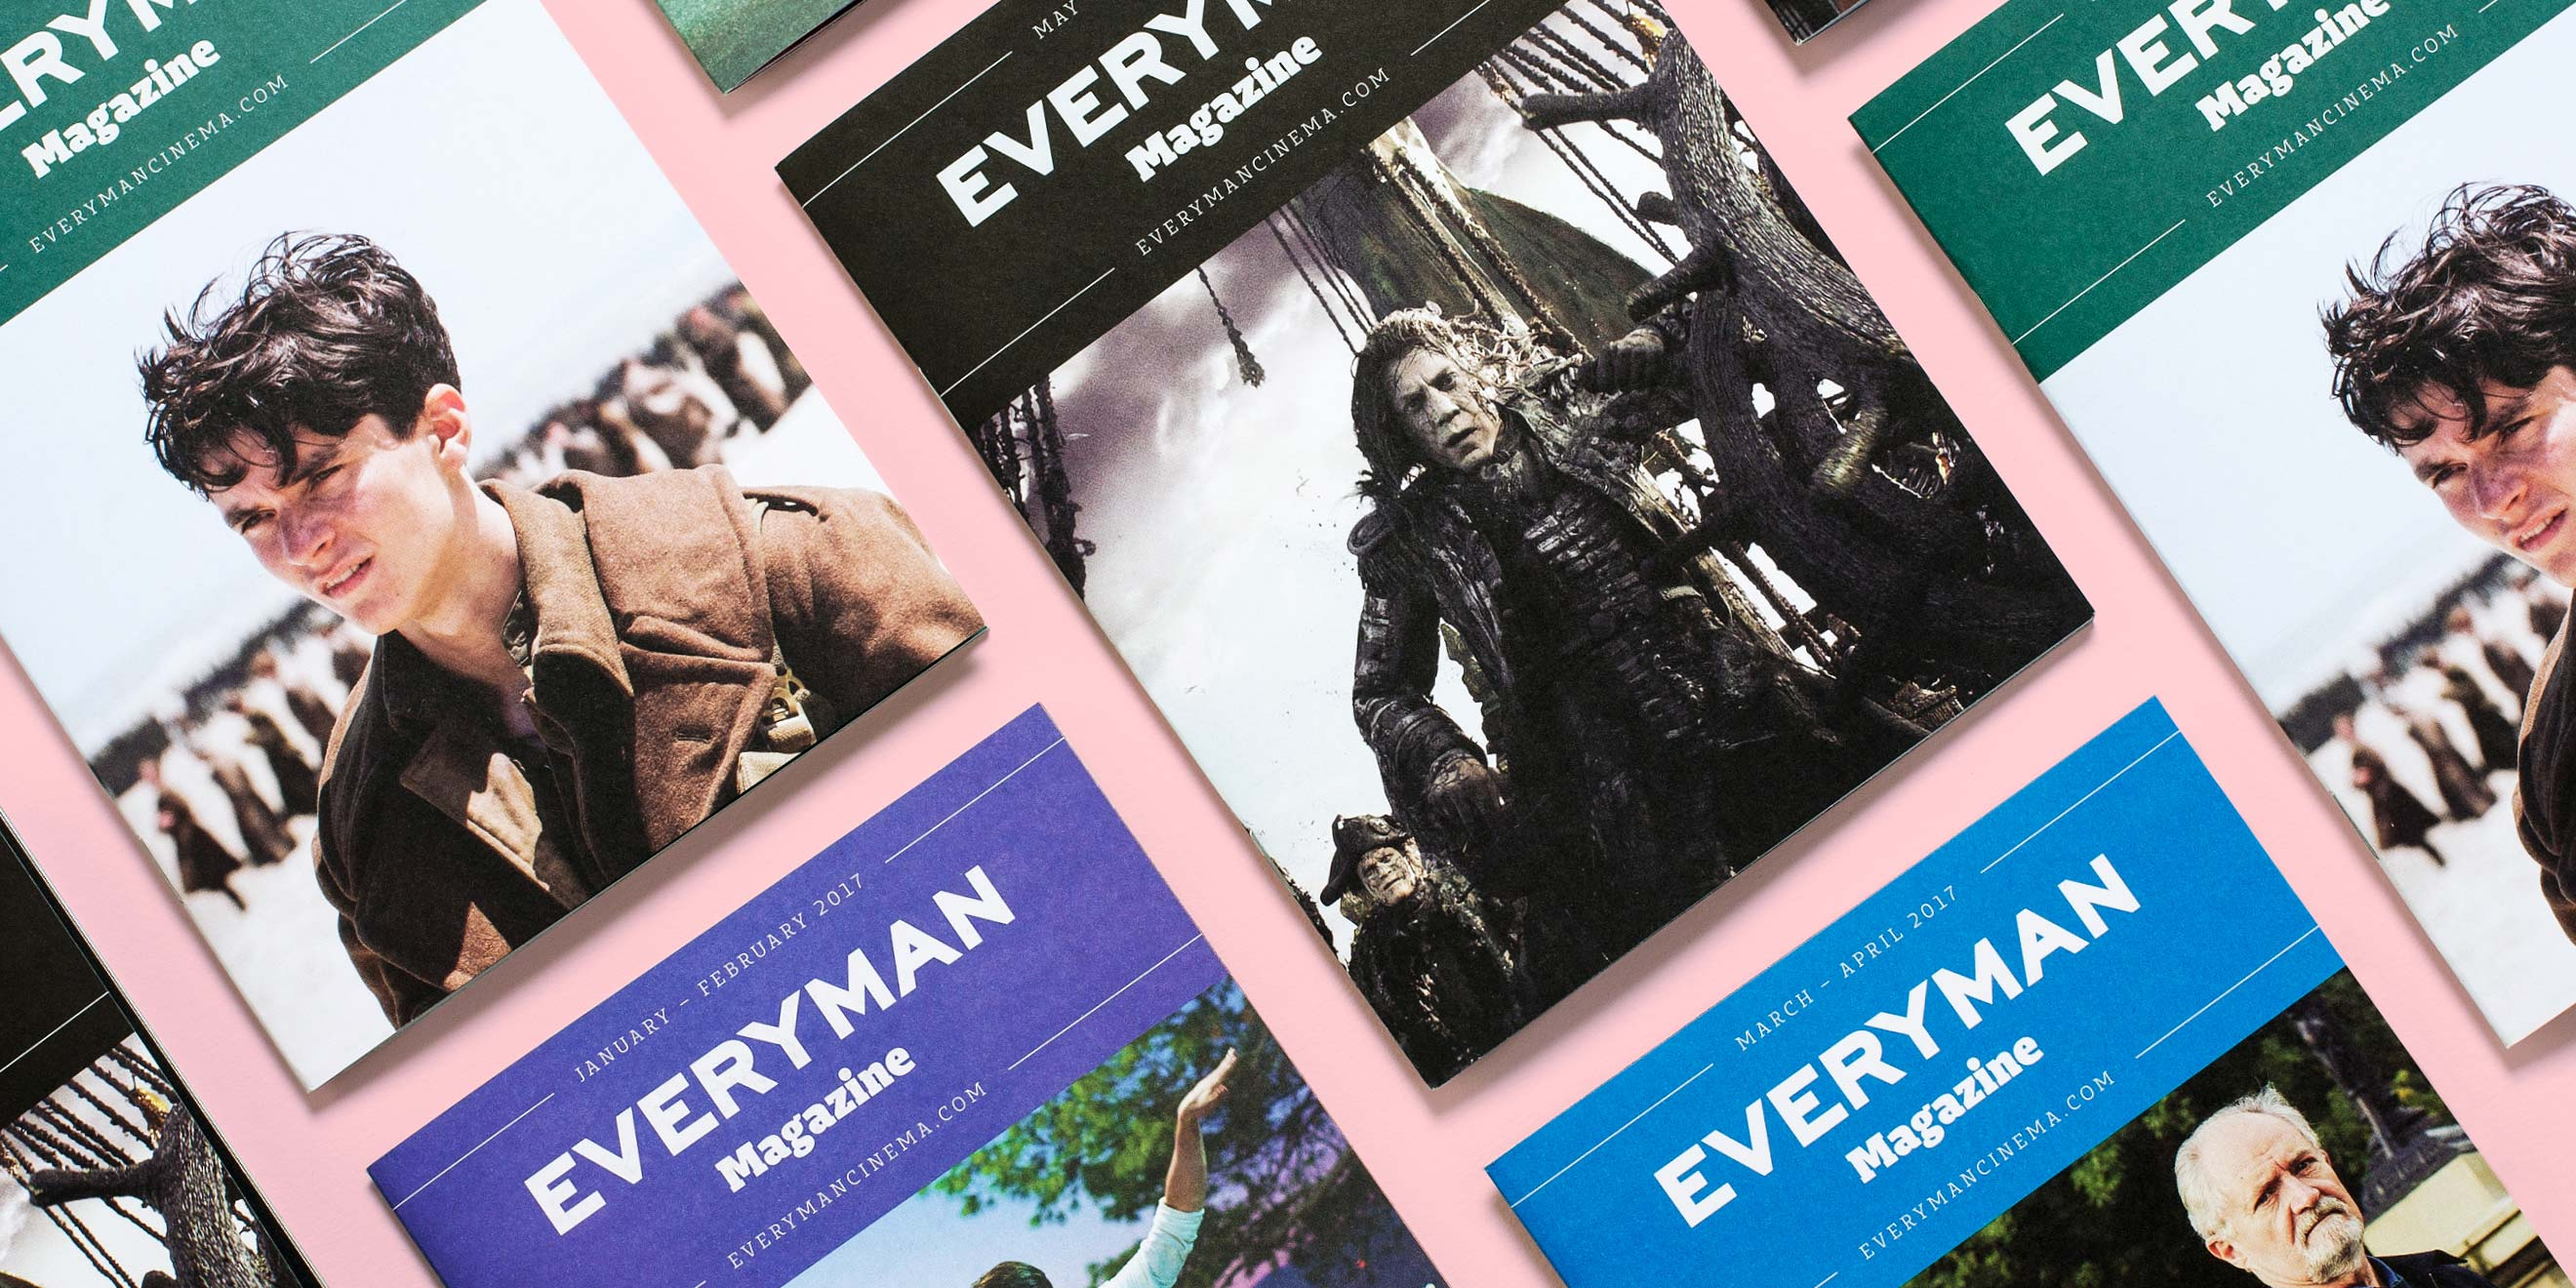 Everyman cinema listings magazine by Human After All